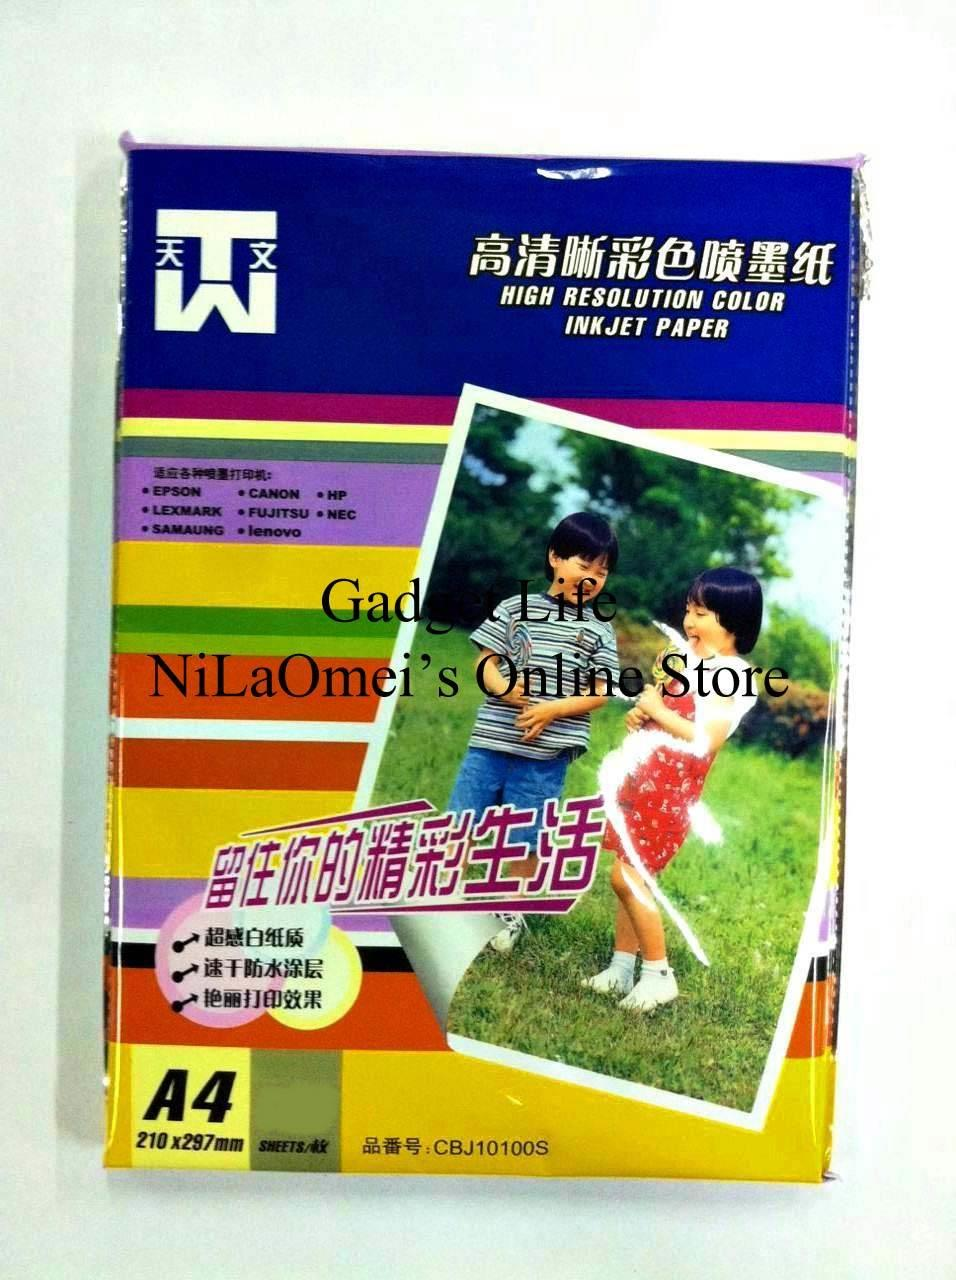 A4 130g Resolution Color Inkjet Self-Adhesive (Sticker) Paper (50sheet